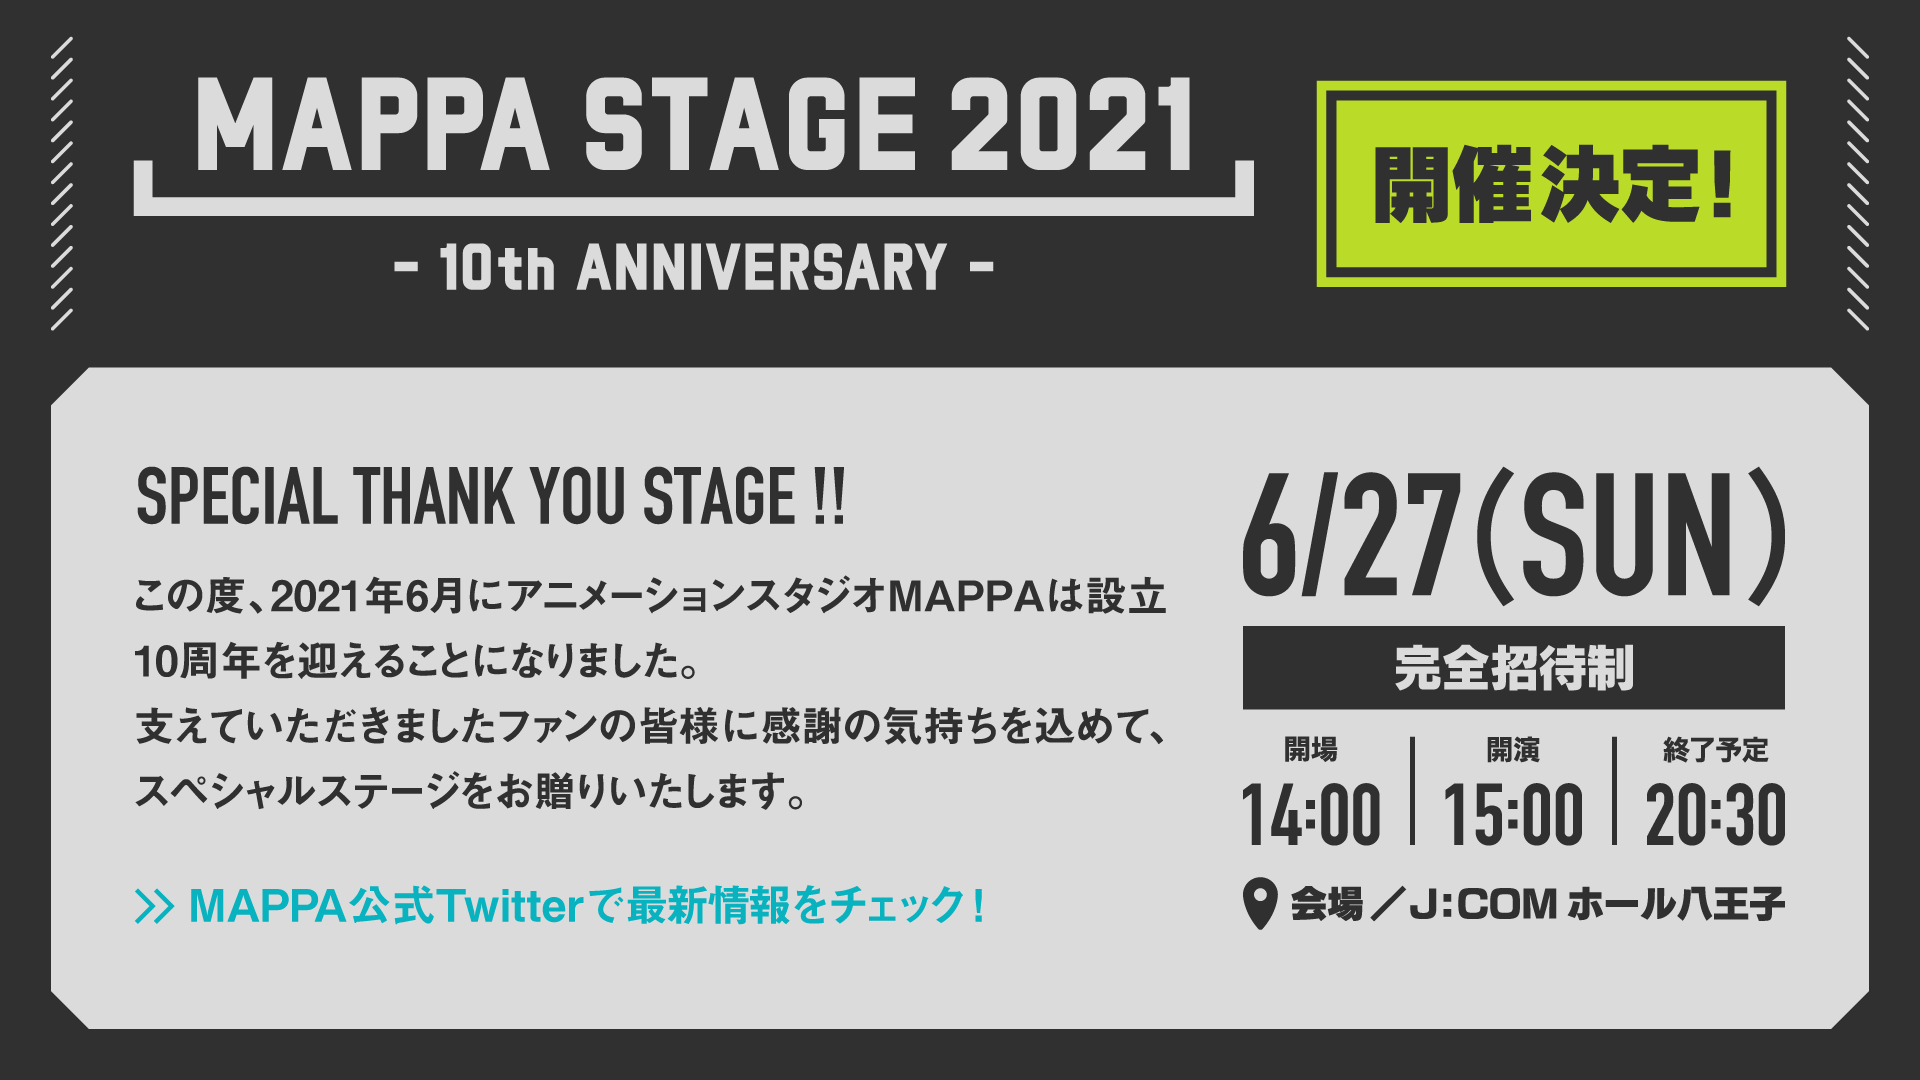 MAPPA STAGE 2021 -10th Anniversary-